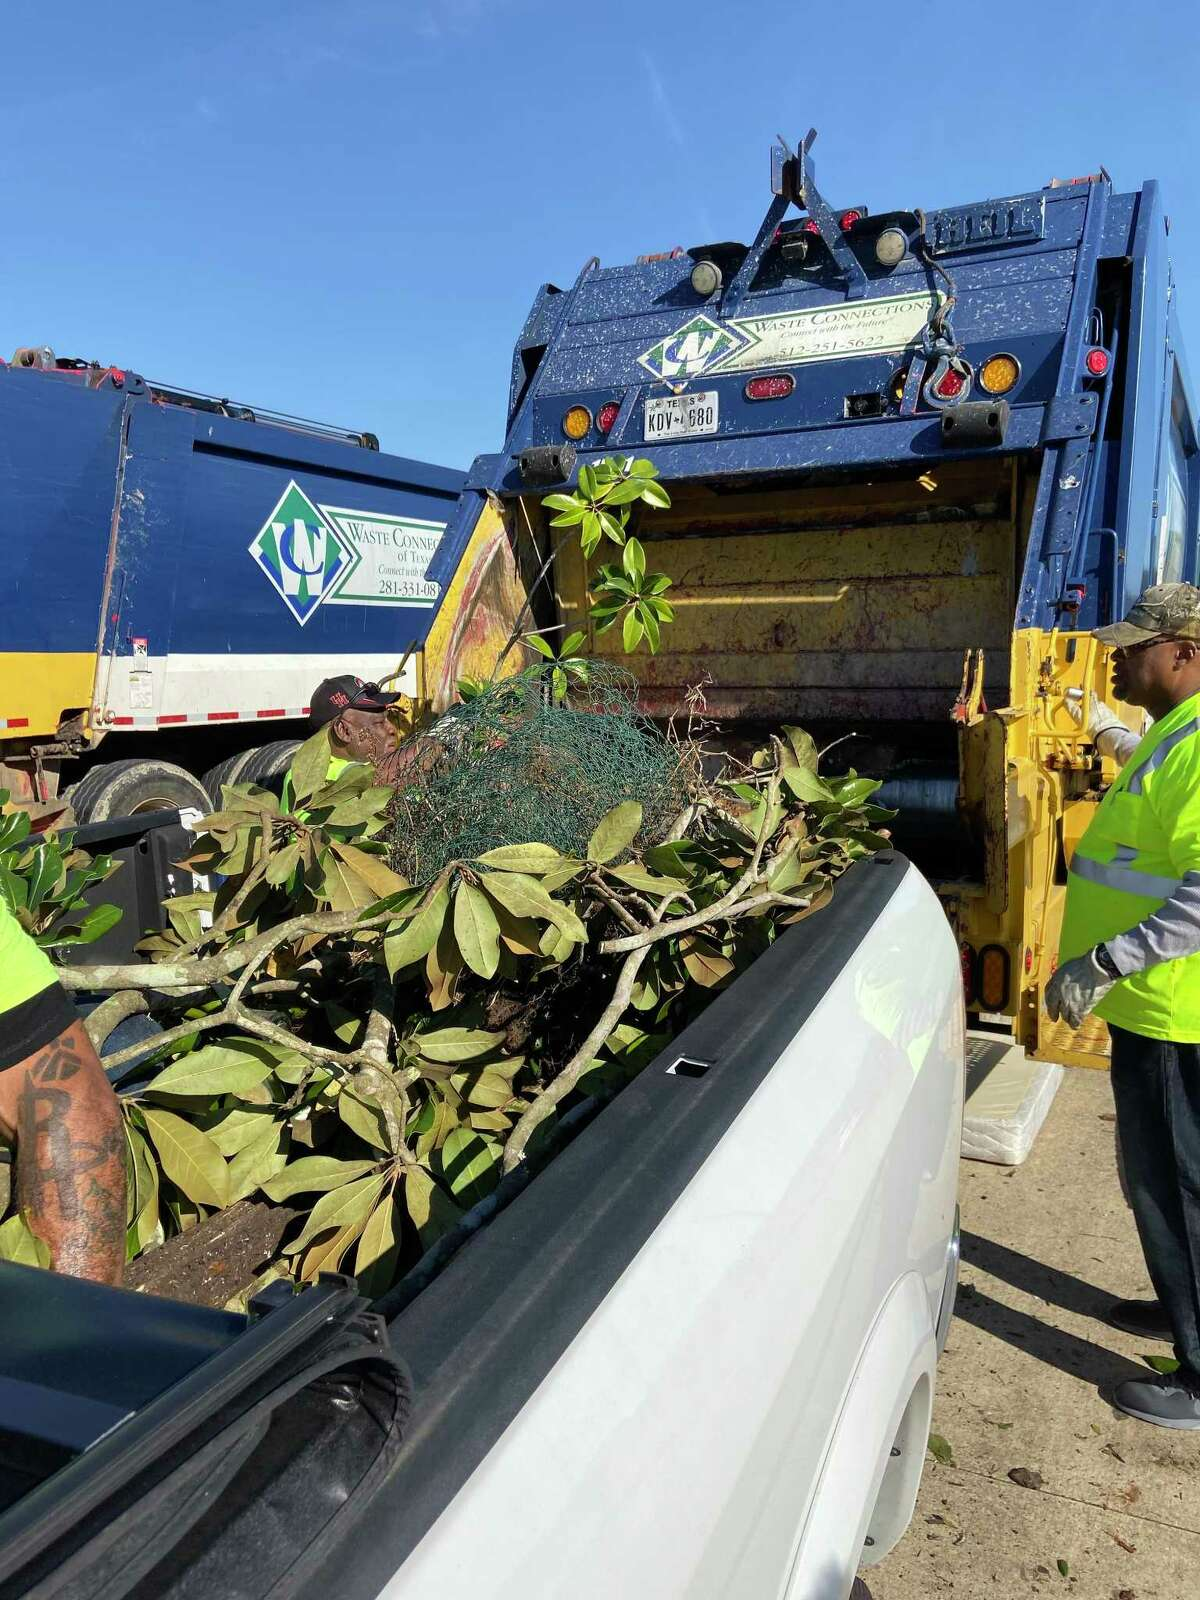 Nearly 160,000 pounds of different types of trash, including almost 9,400 pounds of electronic wastes, were collected at the city of Friendswood's Fall Haul this year.